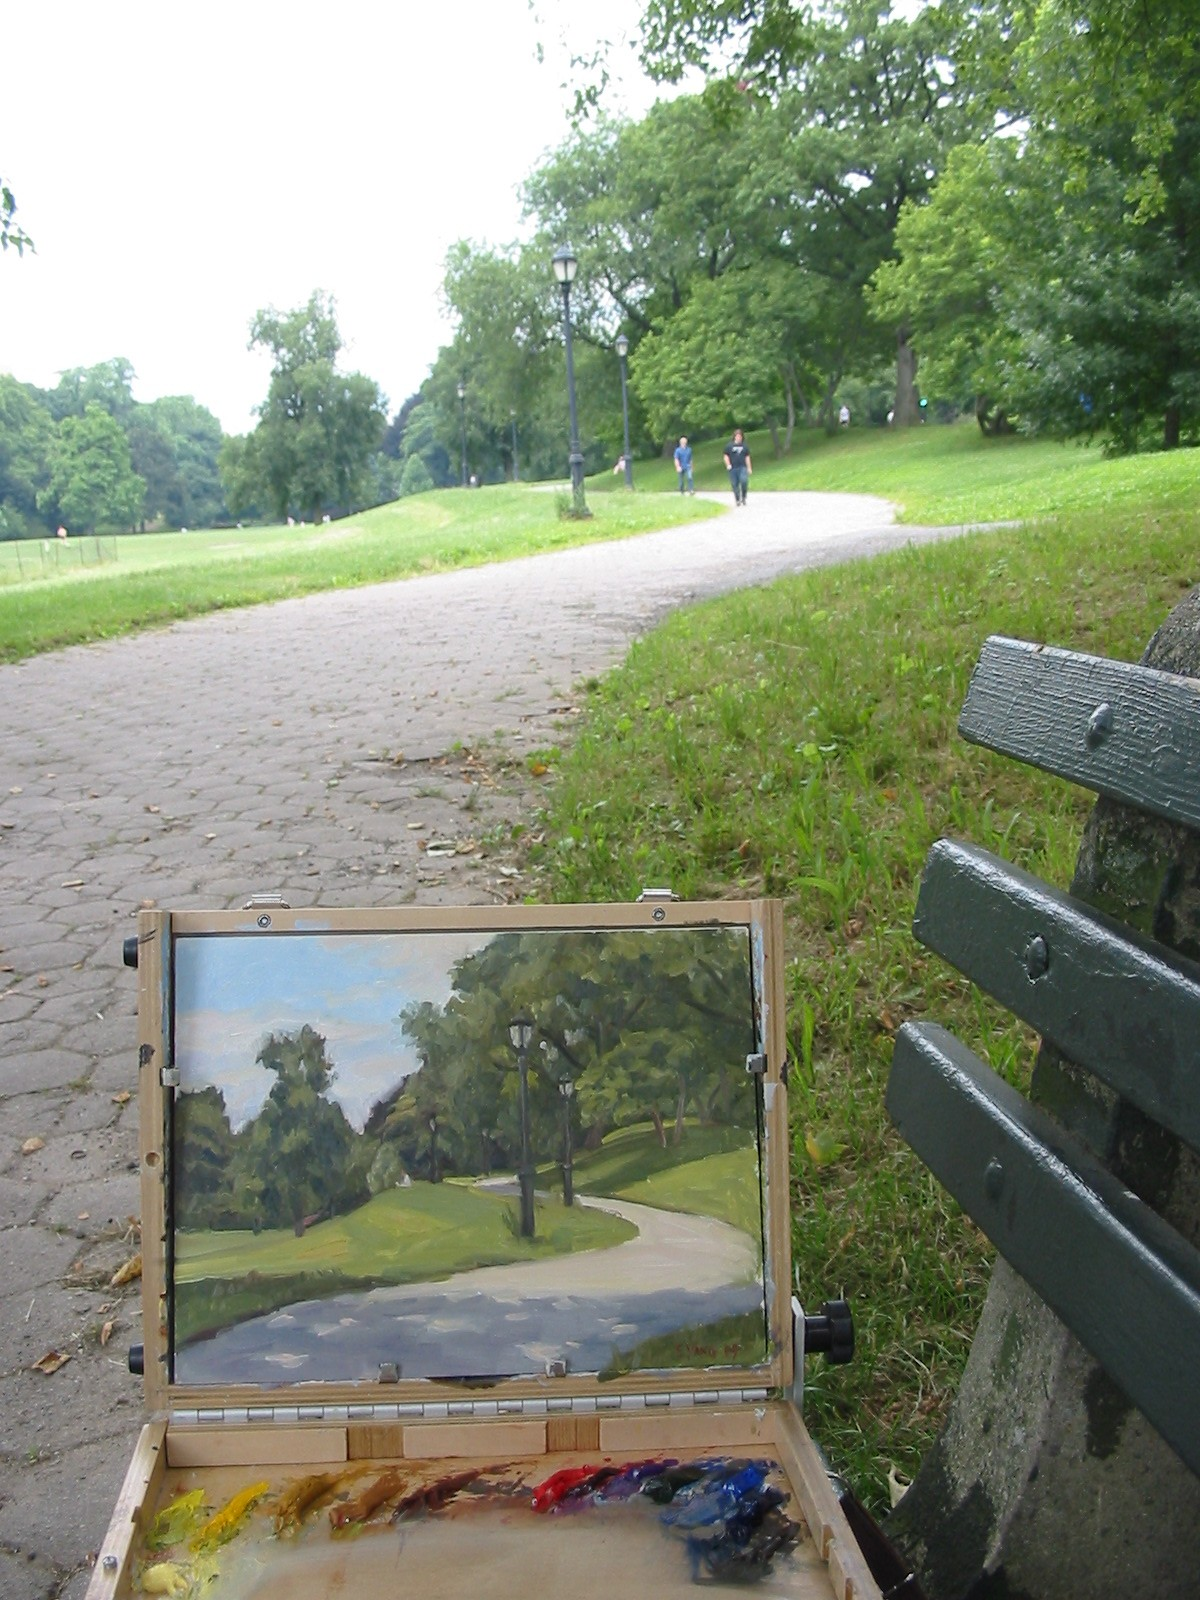 View of path and pochade box on park bench